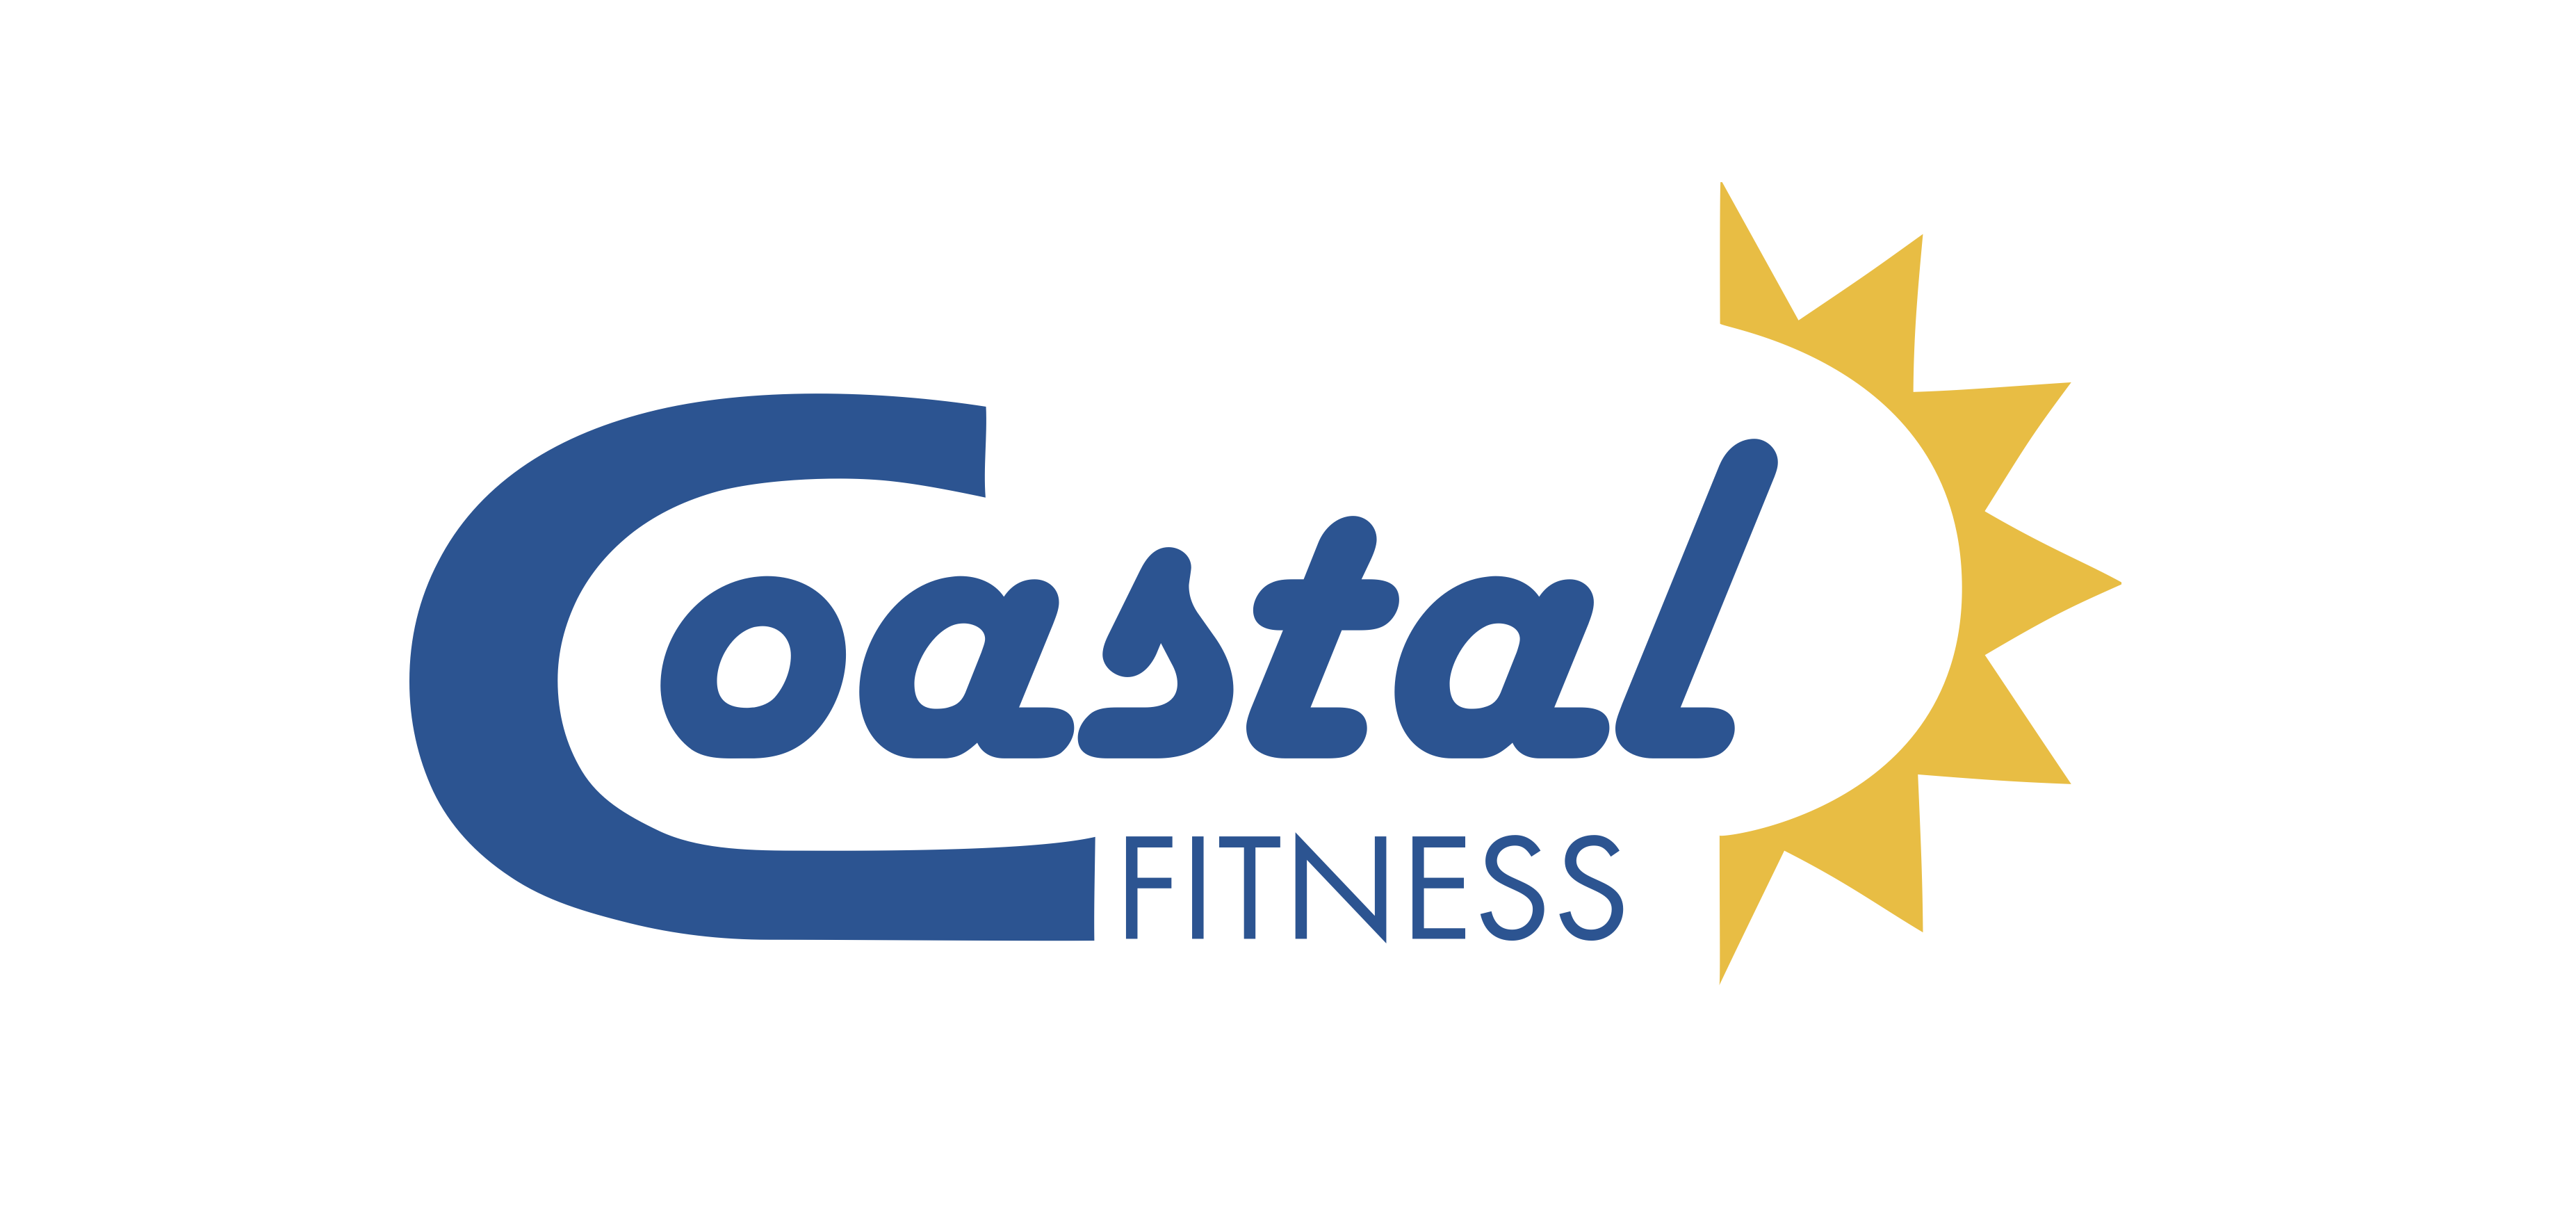 Coastal Fitness Kittery Seacoast Fitness Centers